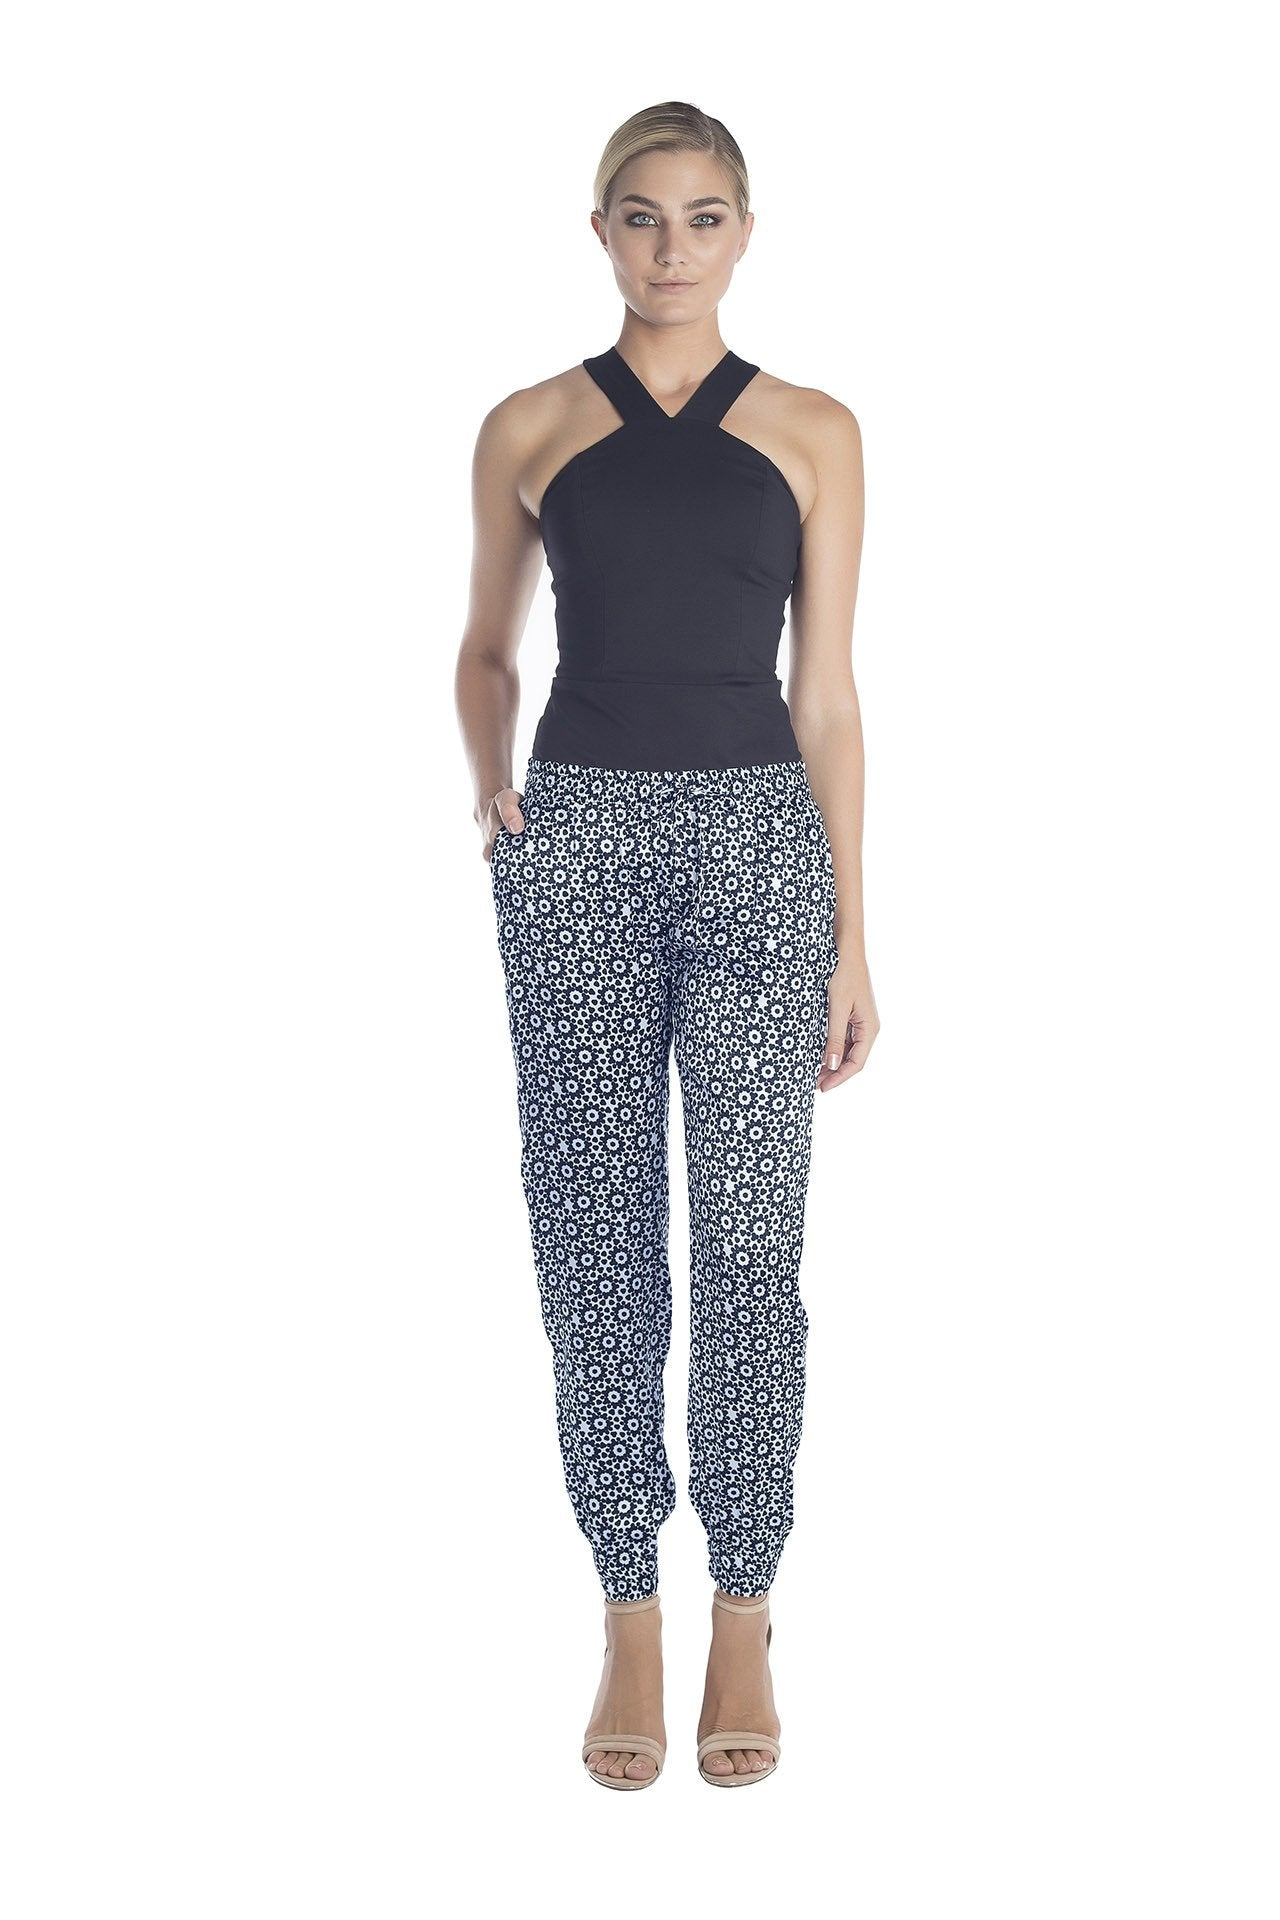 Allover Pant - Black Mantra Print Pants - artTECA